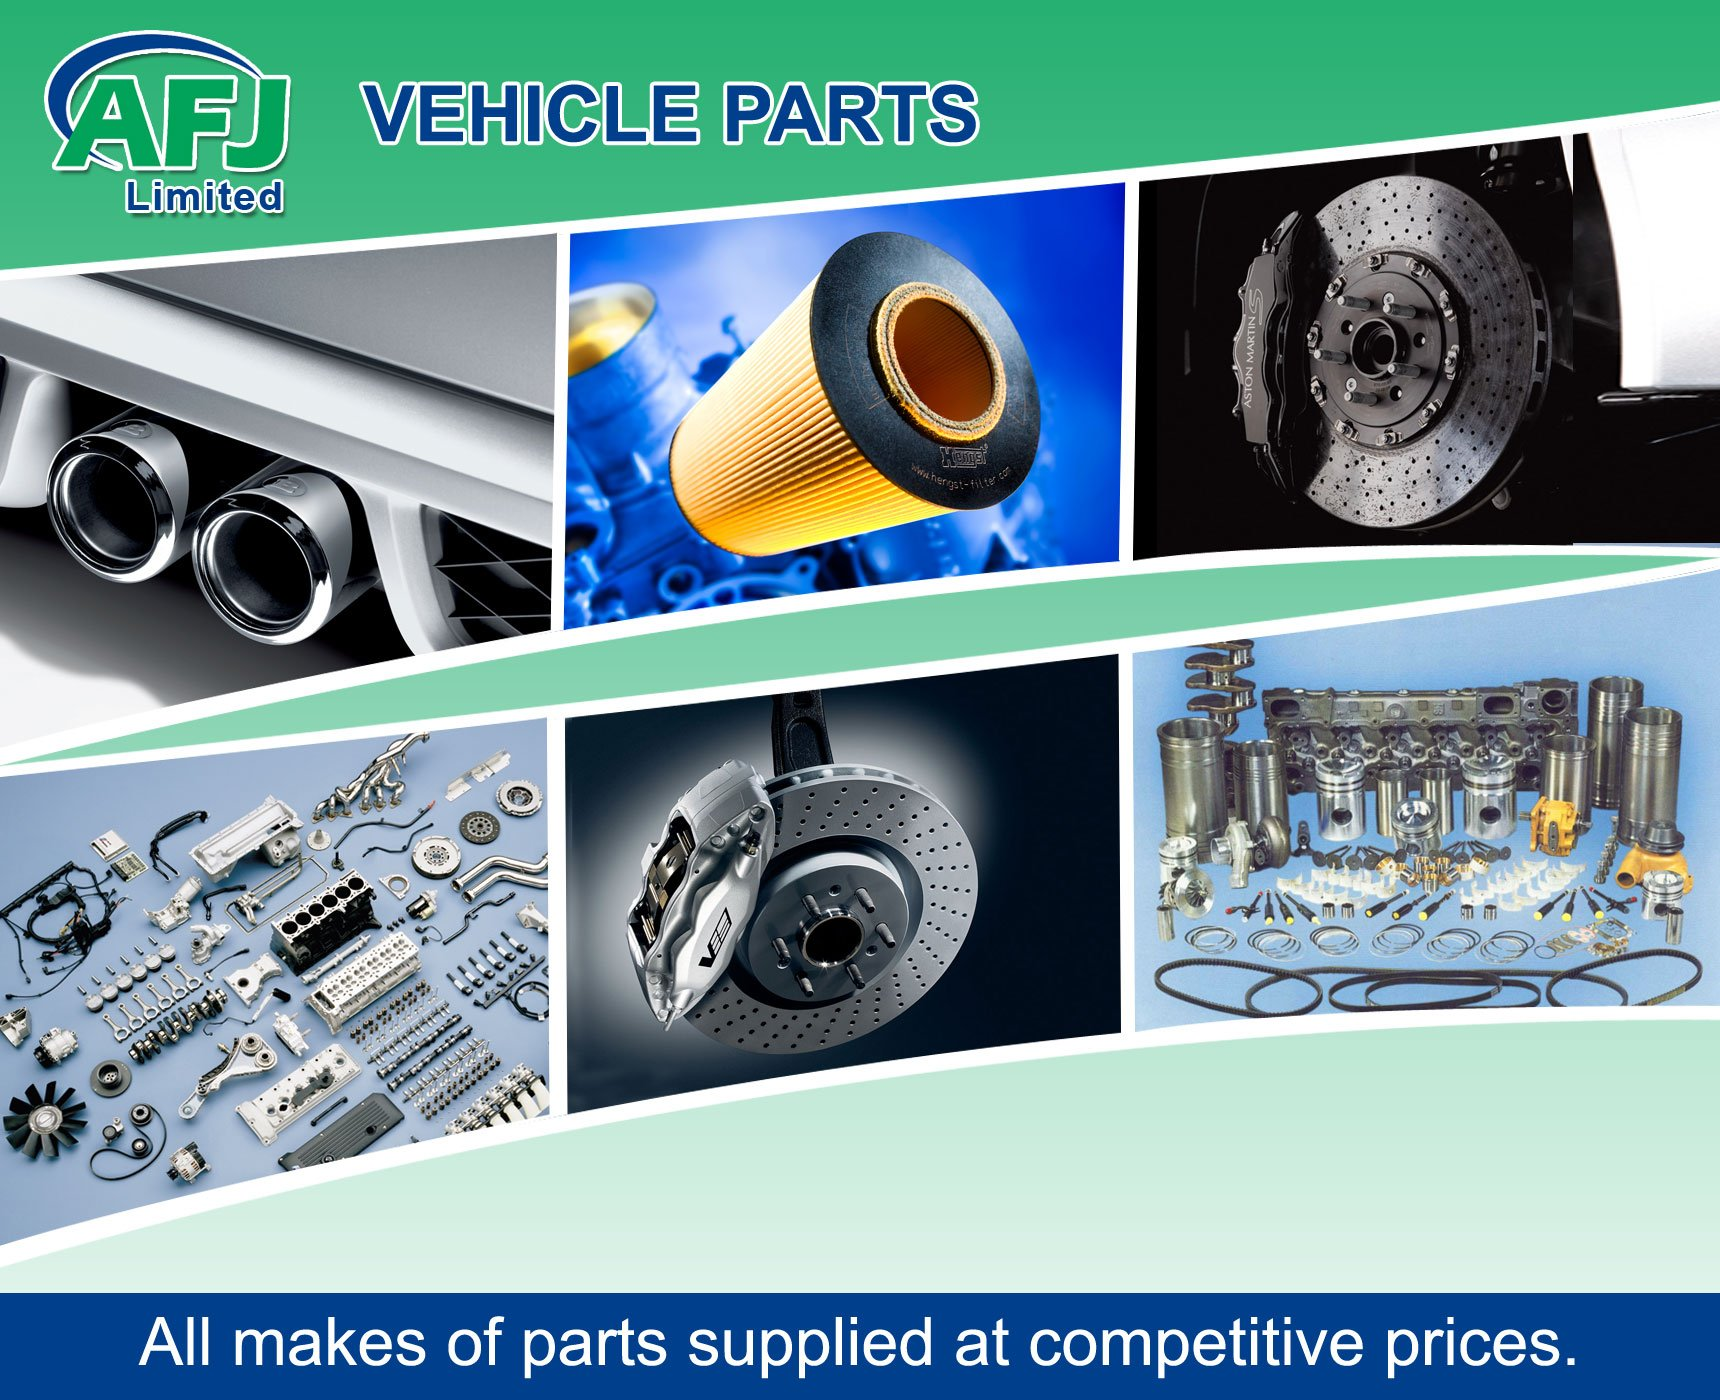 AFJ-Vehicle-Parts